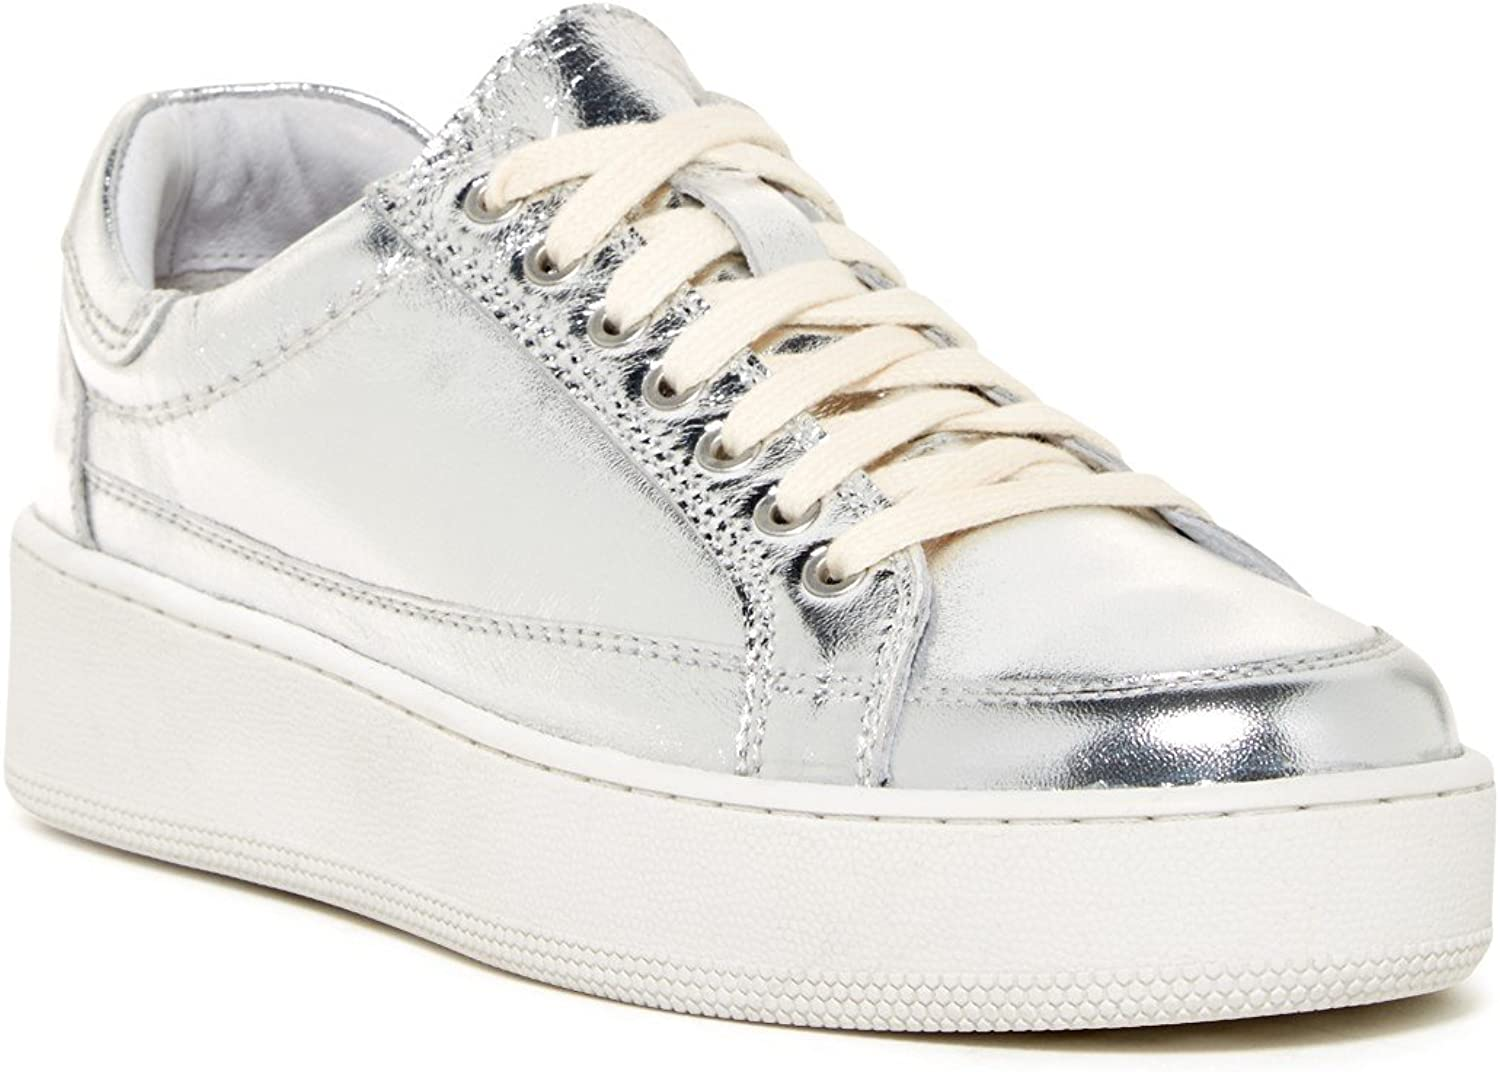 Free People Letterman Leather Sneakers, Metallic Silver 38 8